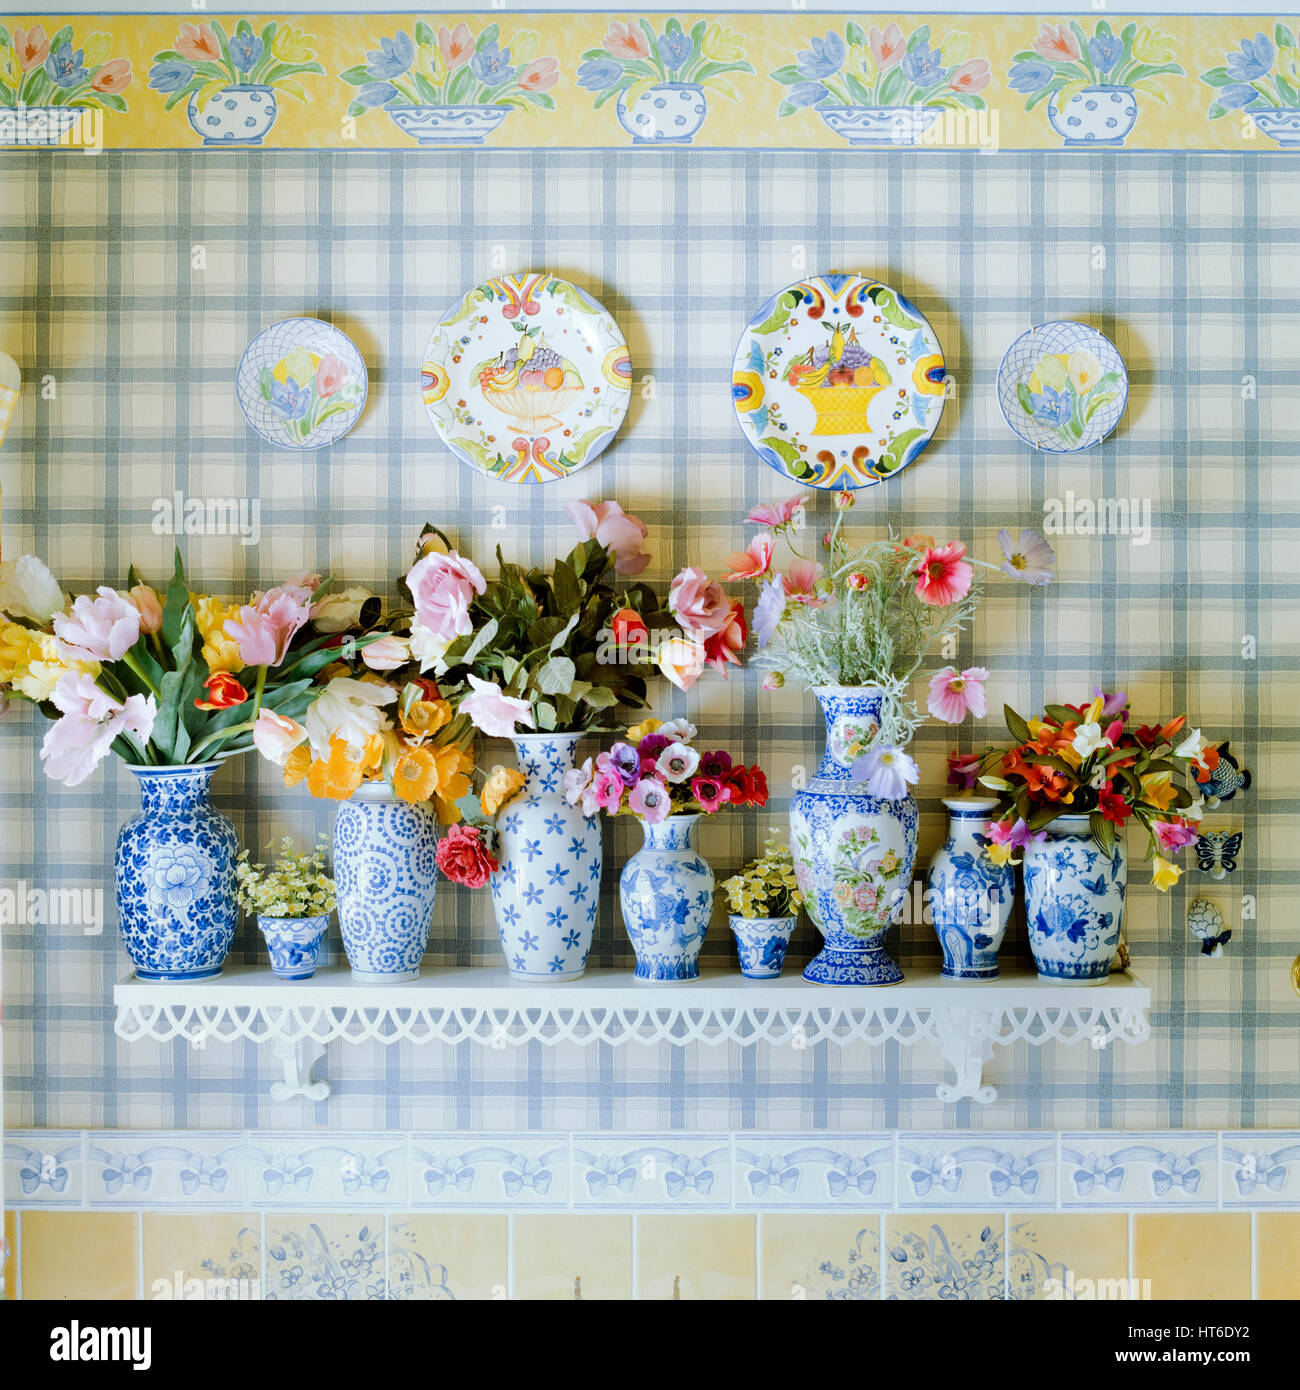 Collection of vases and flowers. - Stock Image